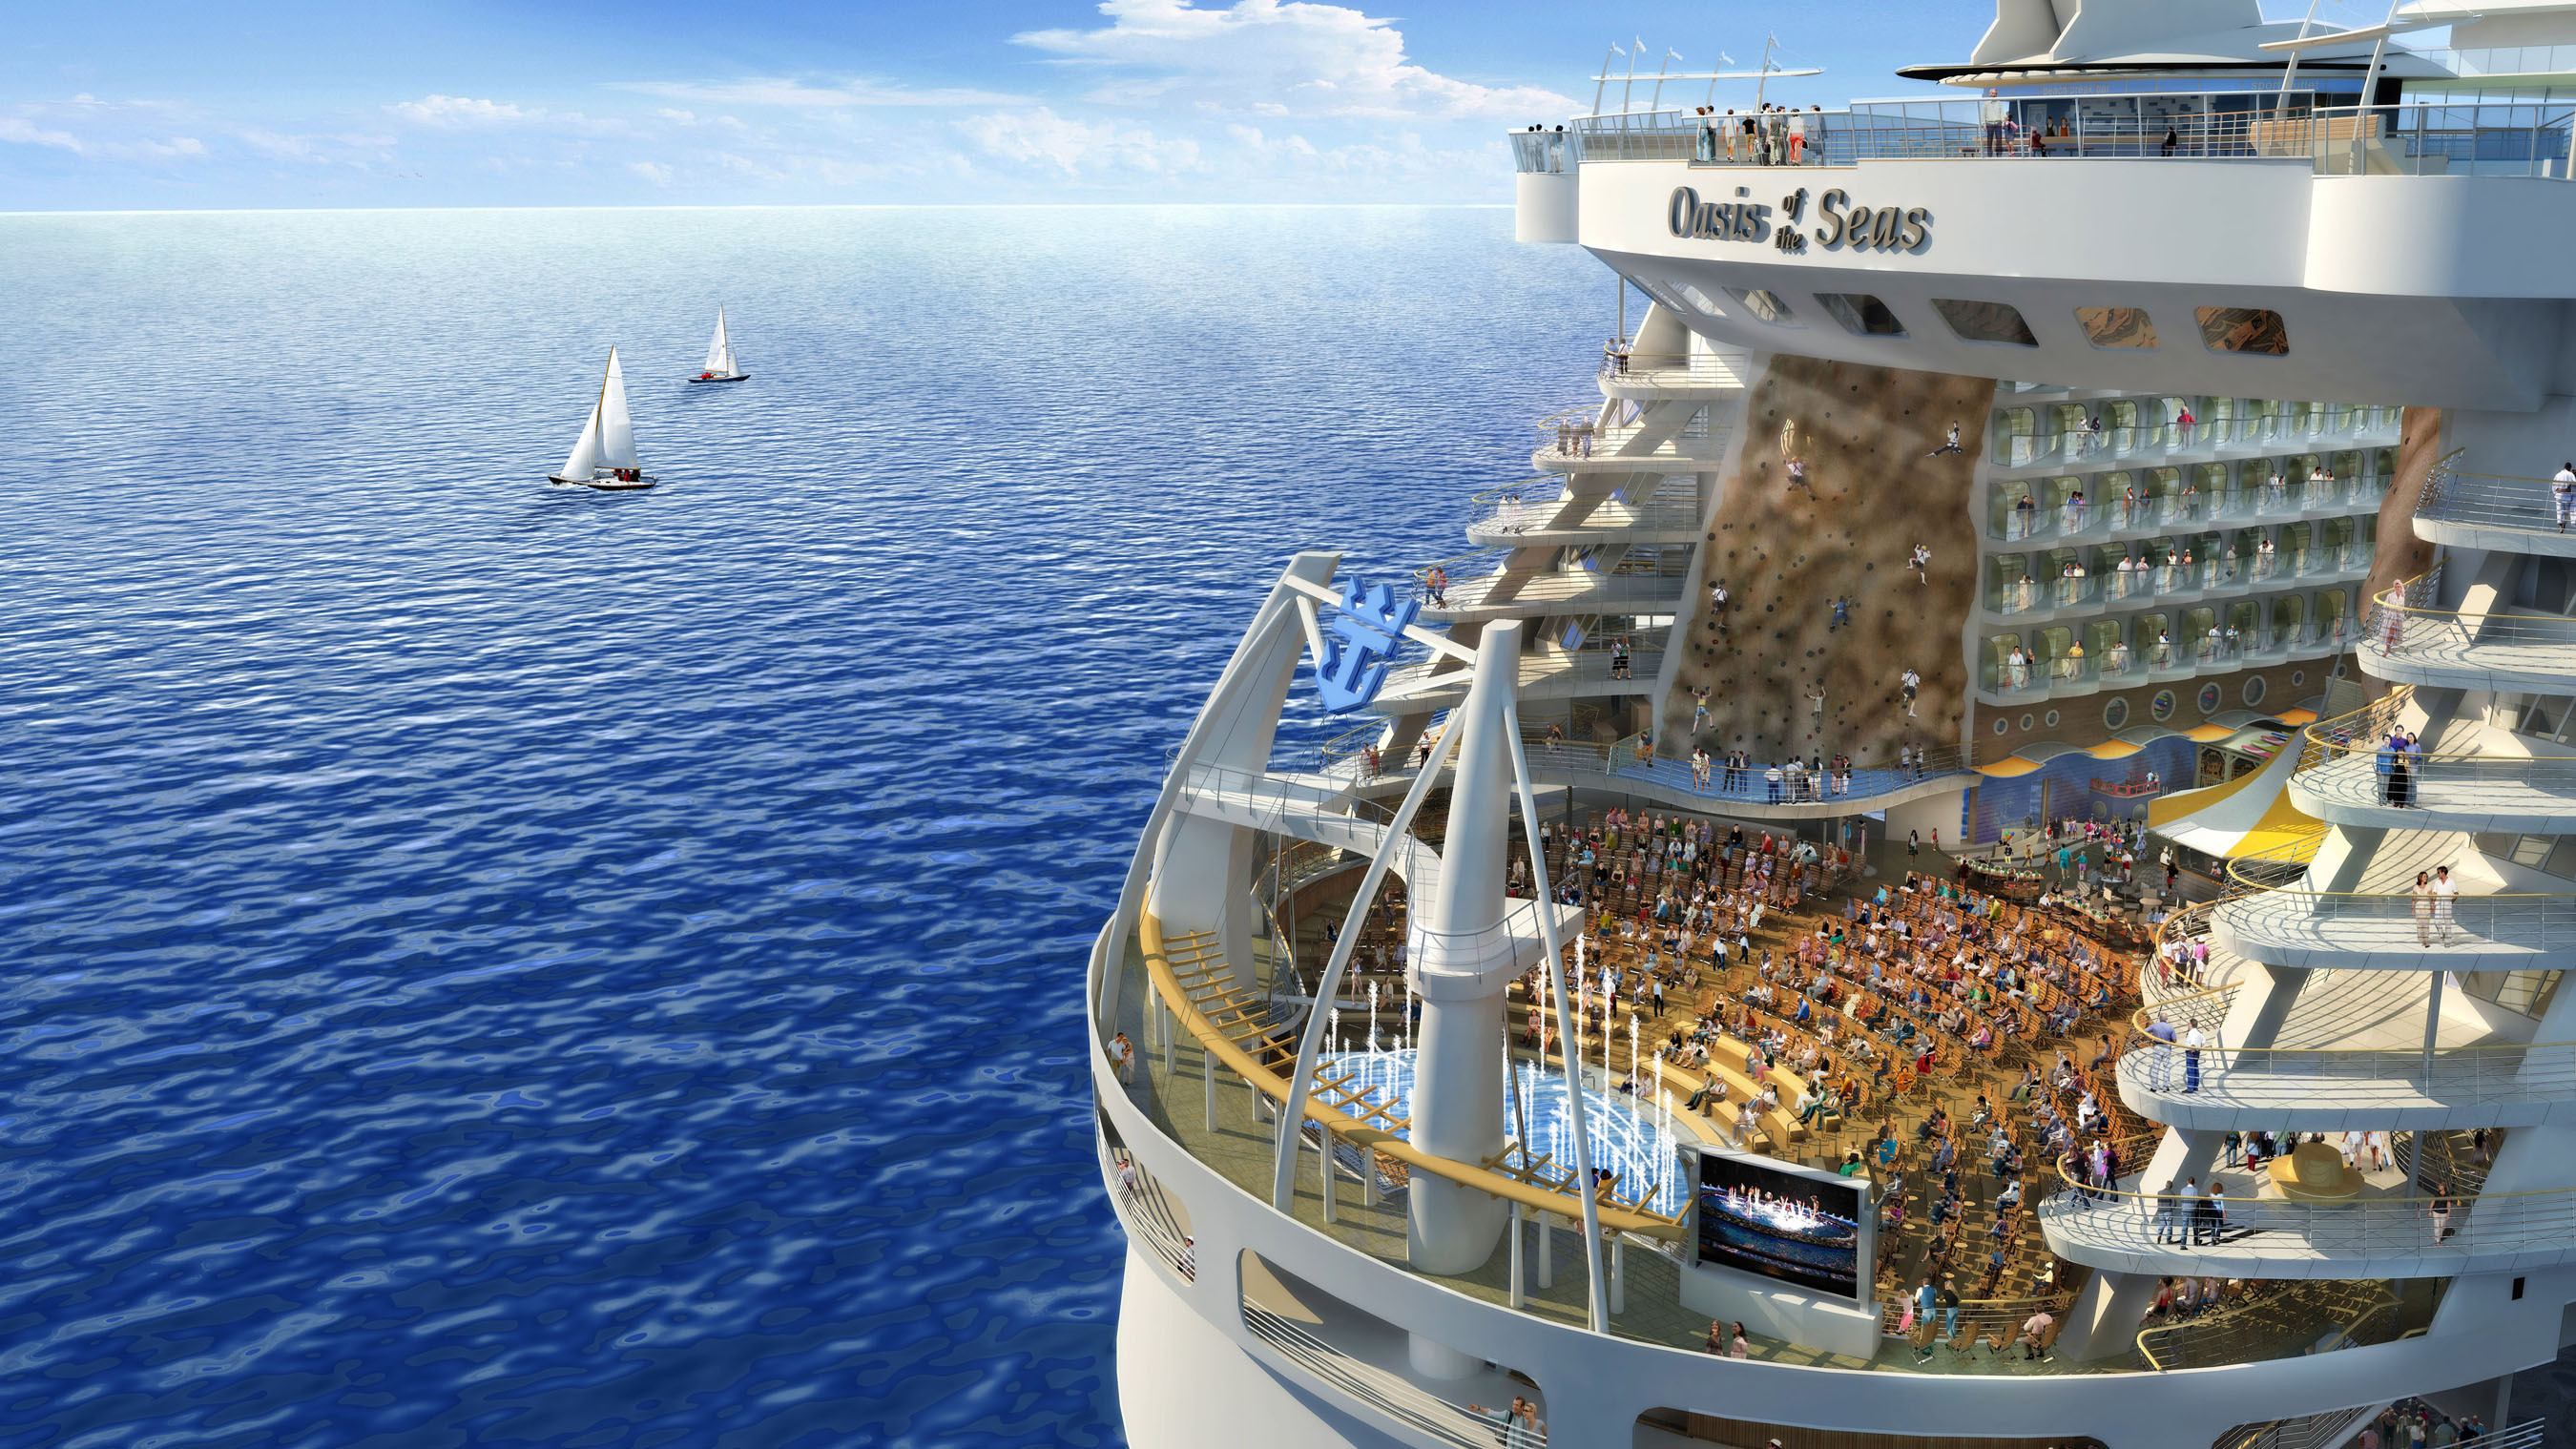 Oasis of the Seas at Port Canaveral in 2016!